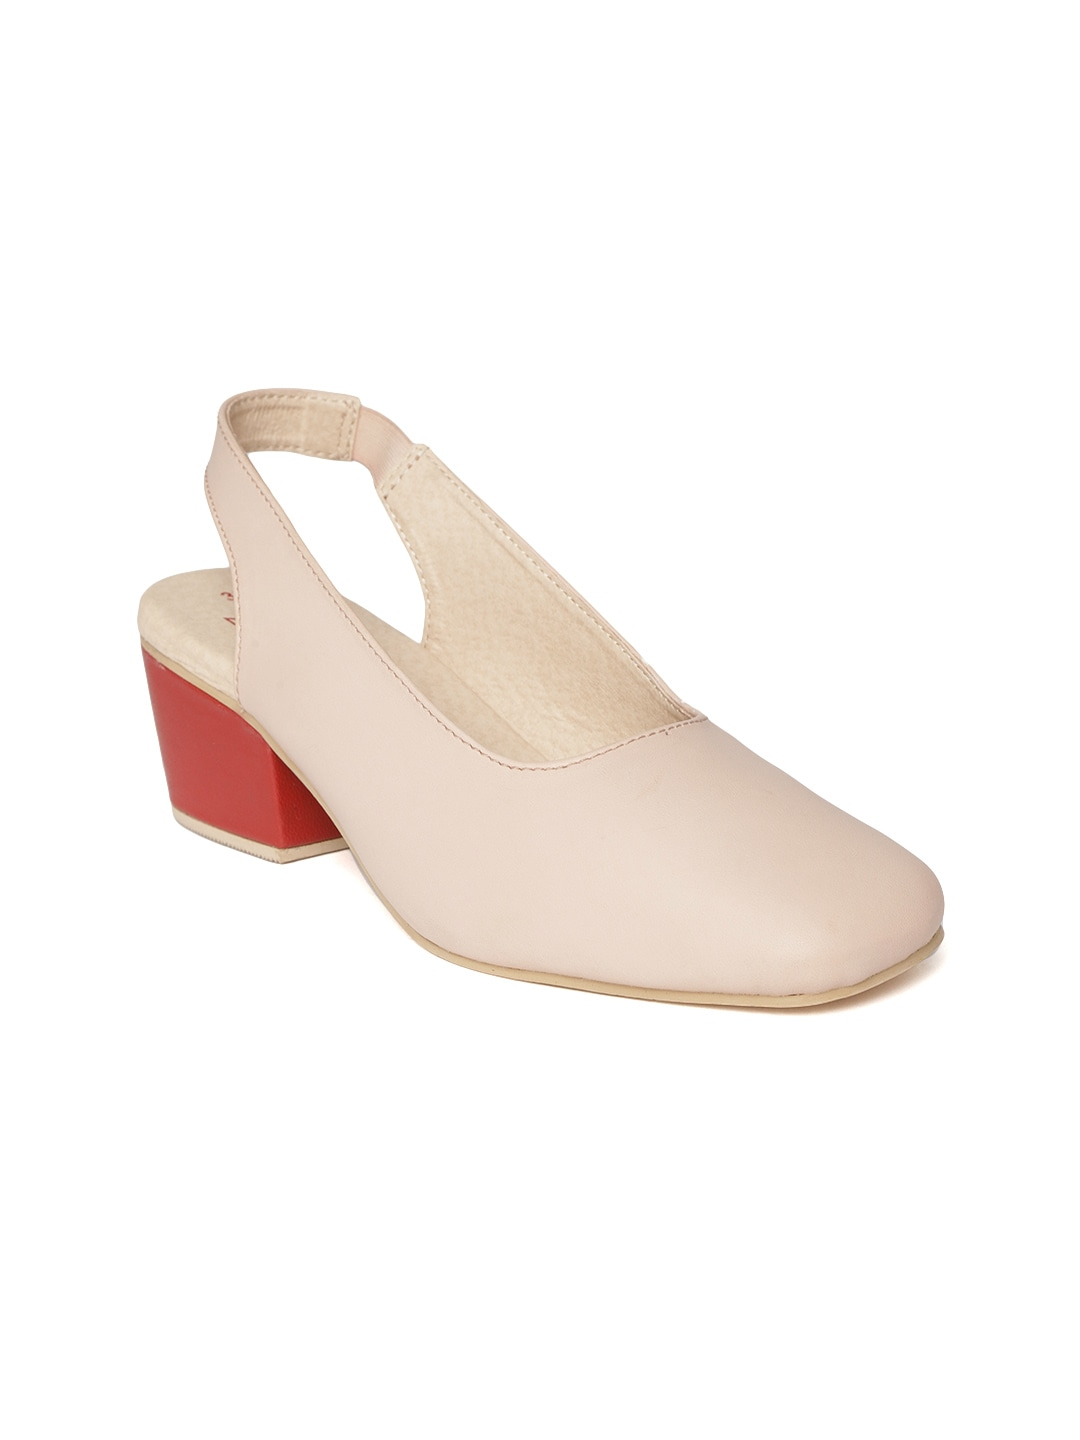 Peach-Coloured Solid Pumps